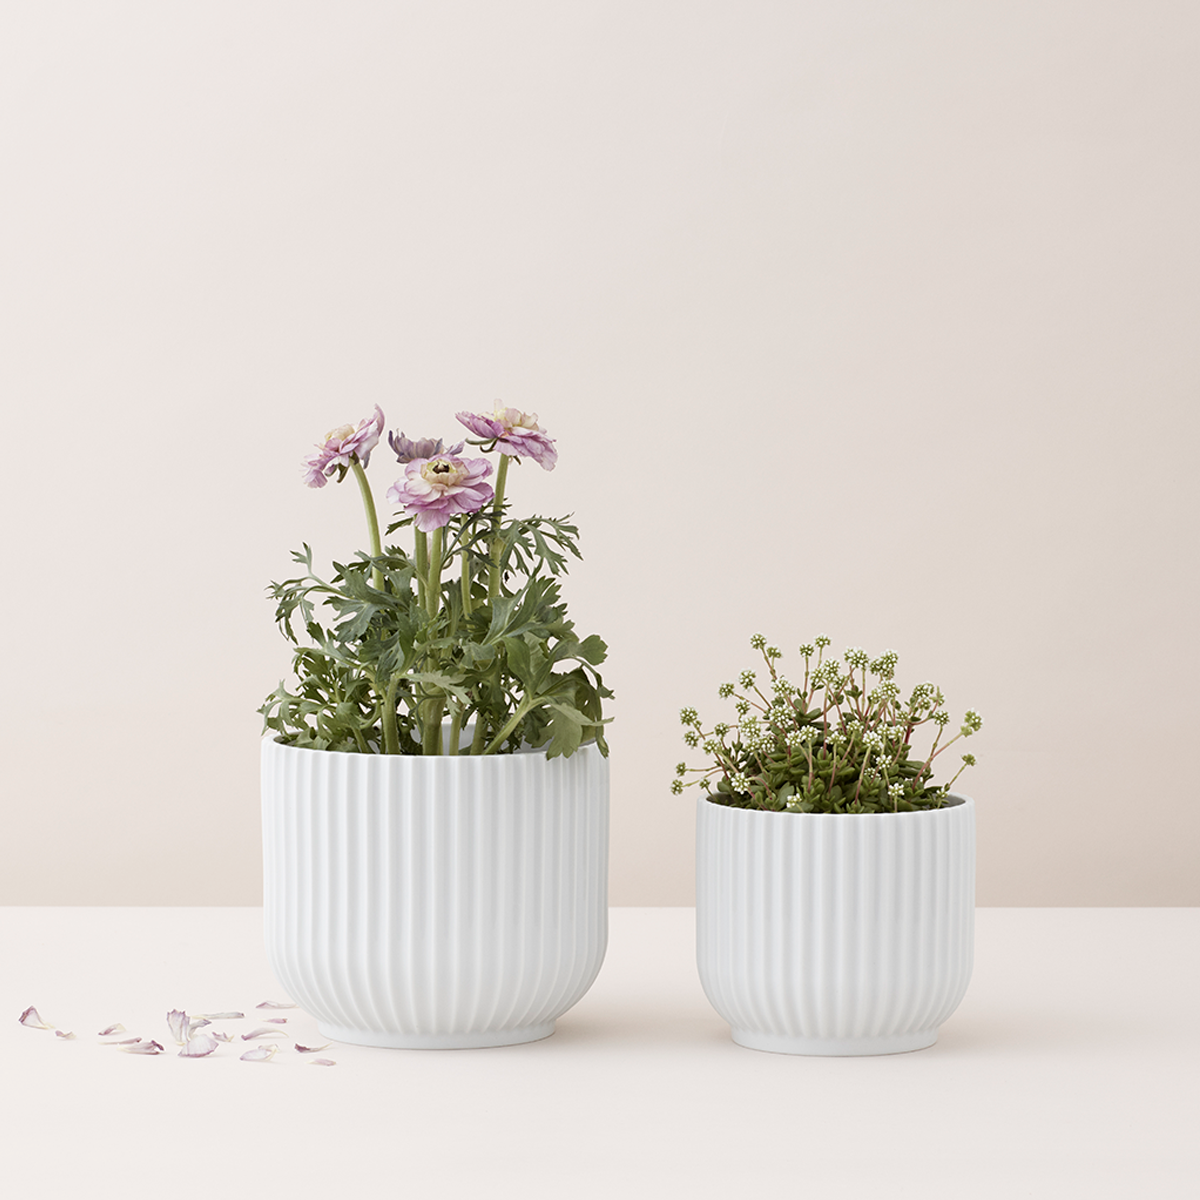 Lyngby Porcelæn : small flower pot - startupinsights.org